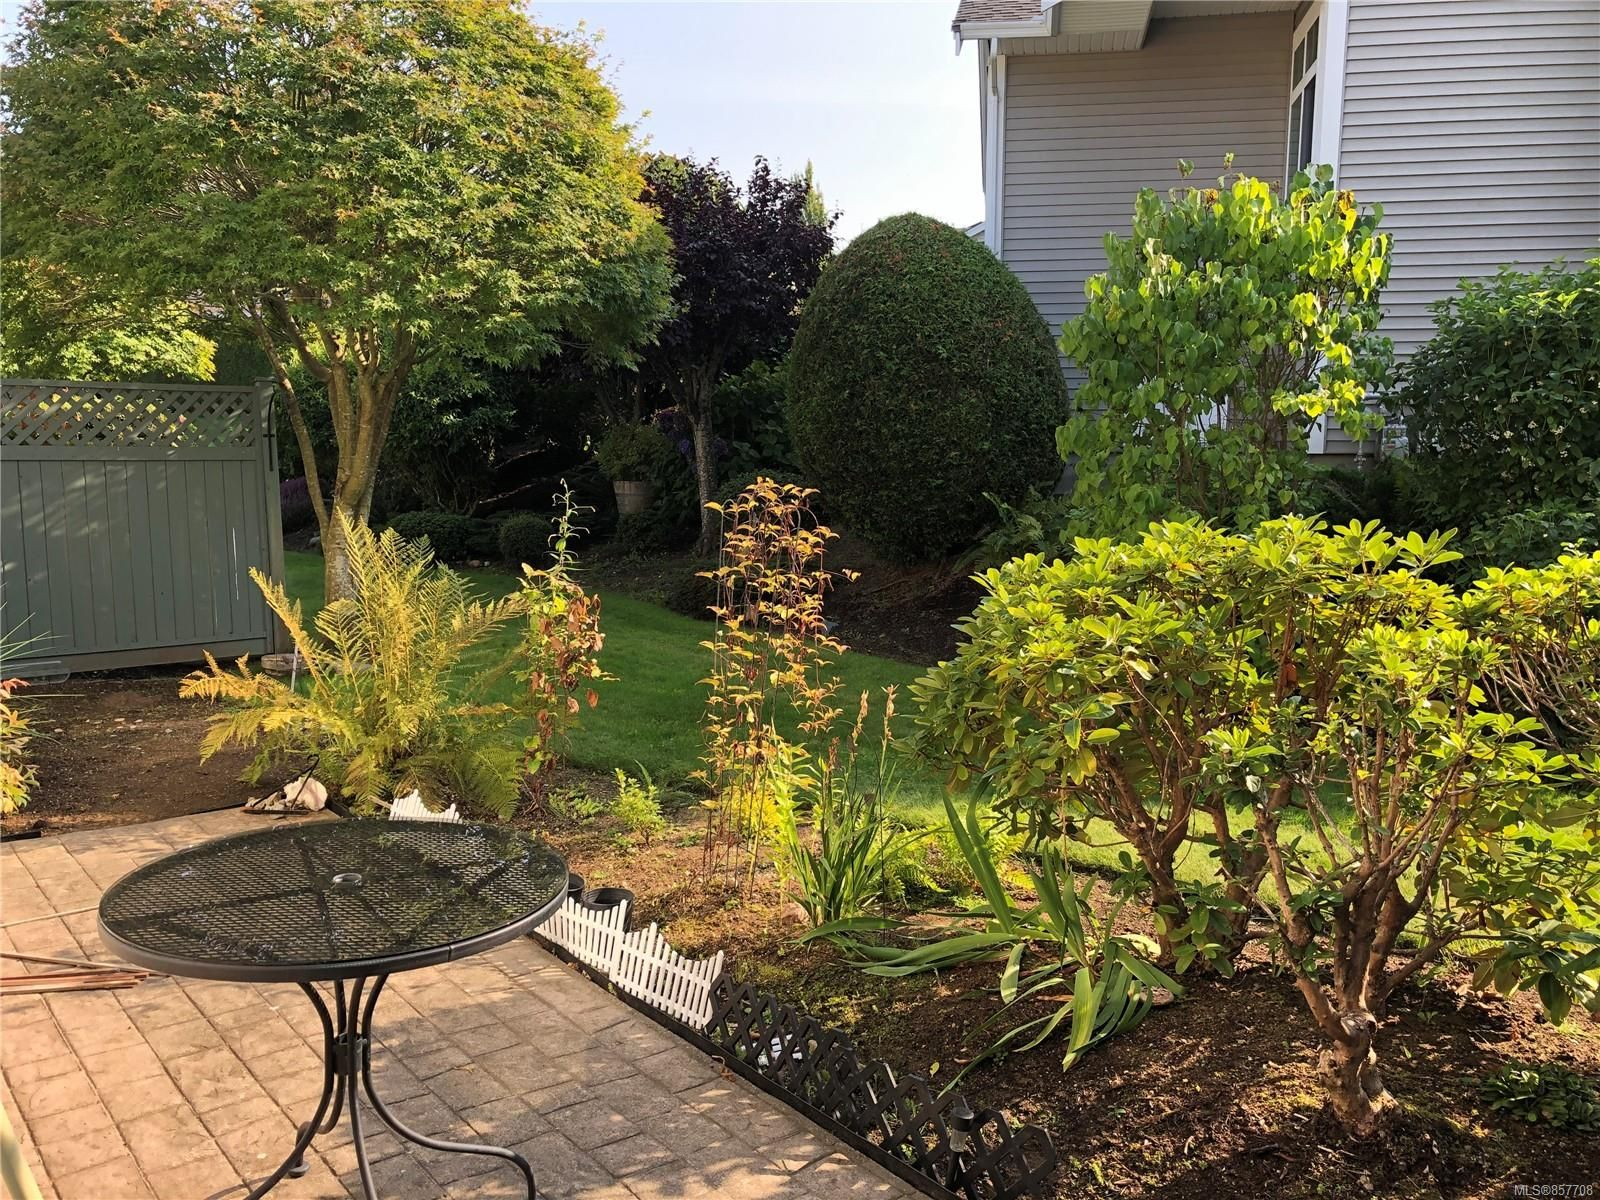 Photo 12: Photos: 6151 Bellflower Way in : Na North Nanaimo Row/Townhouse for sale (Nanaimo)  : MLS®# 857708